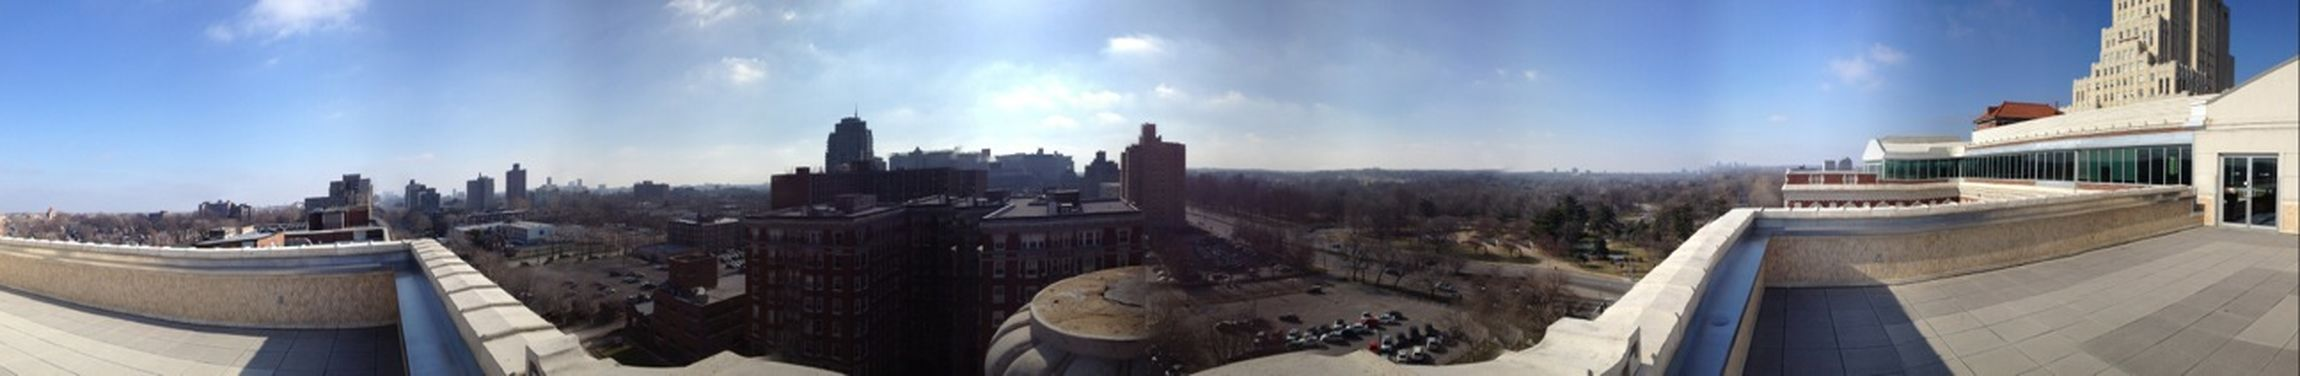 The St Louis skyline from atop the Chase